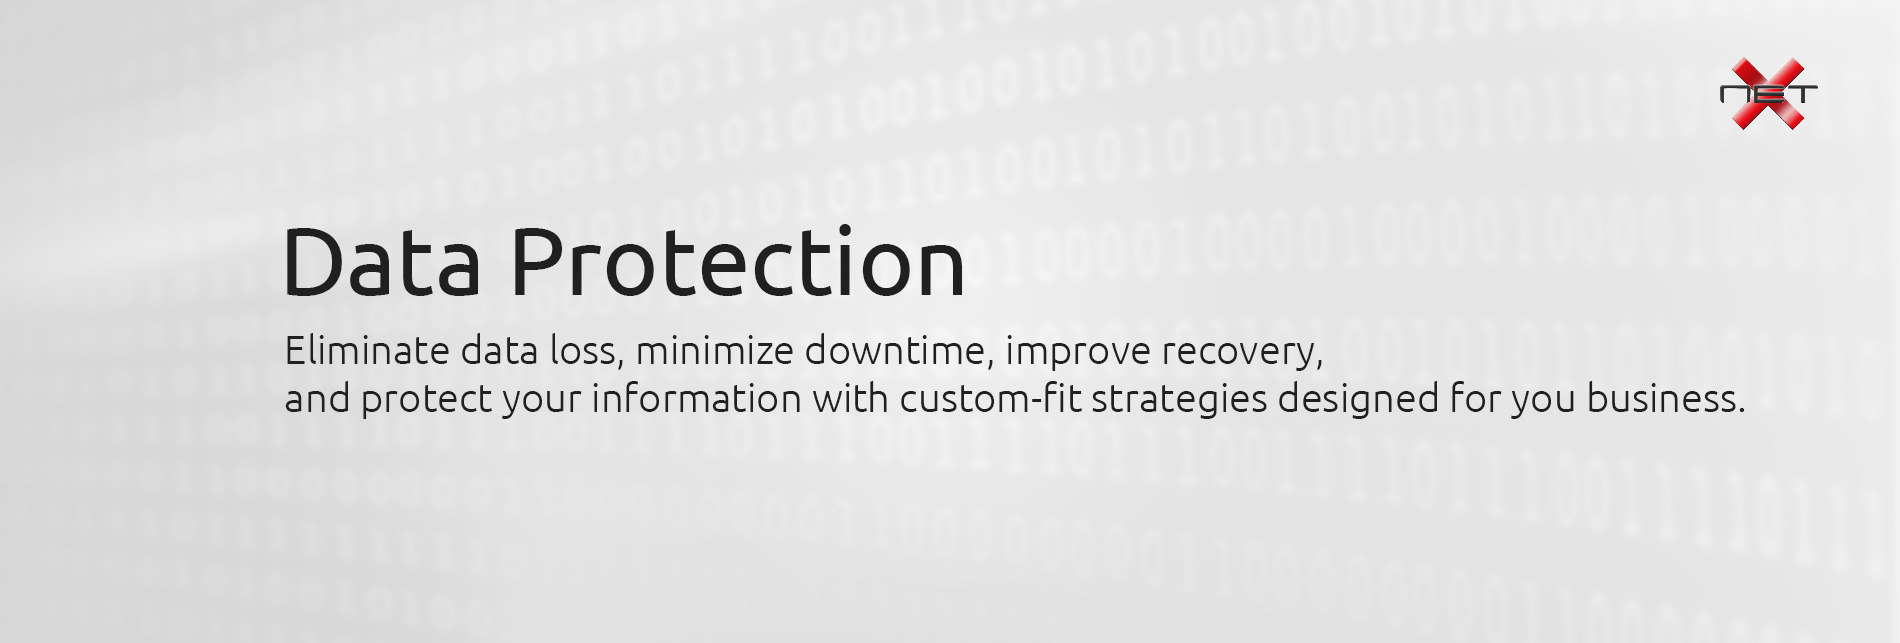 Data Protection by NetX